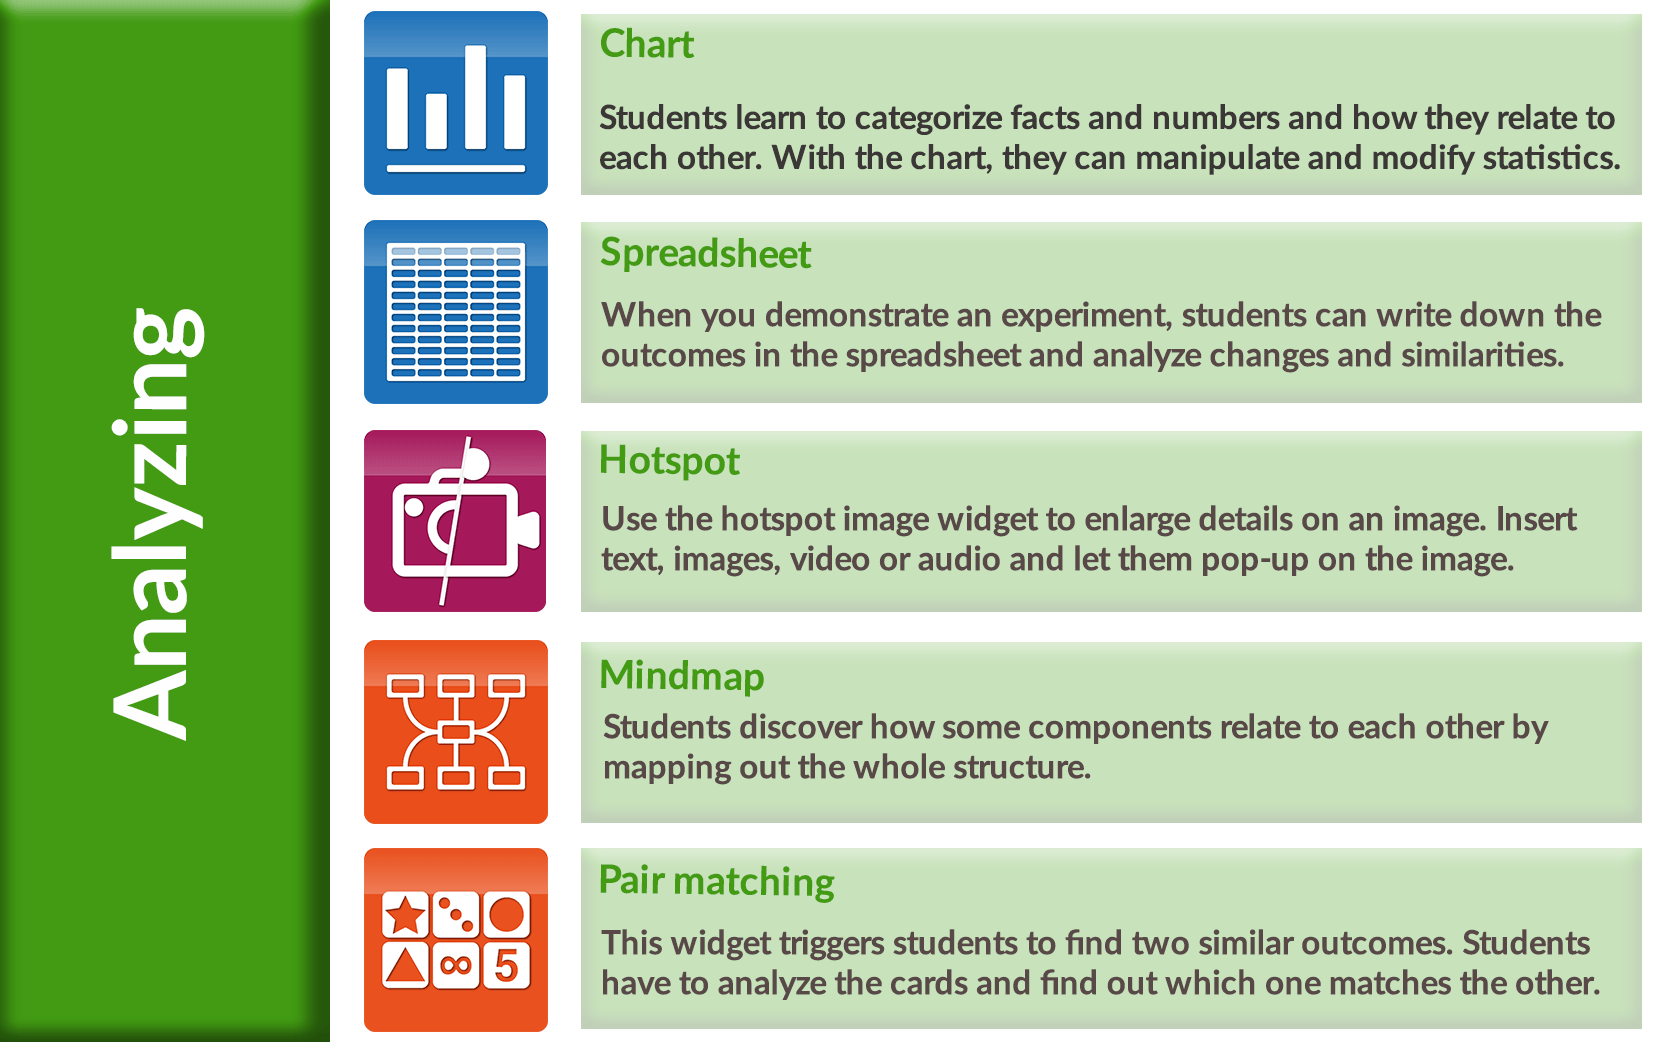 How To Relate Bookwidgets To Bloom S Taxonomy